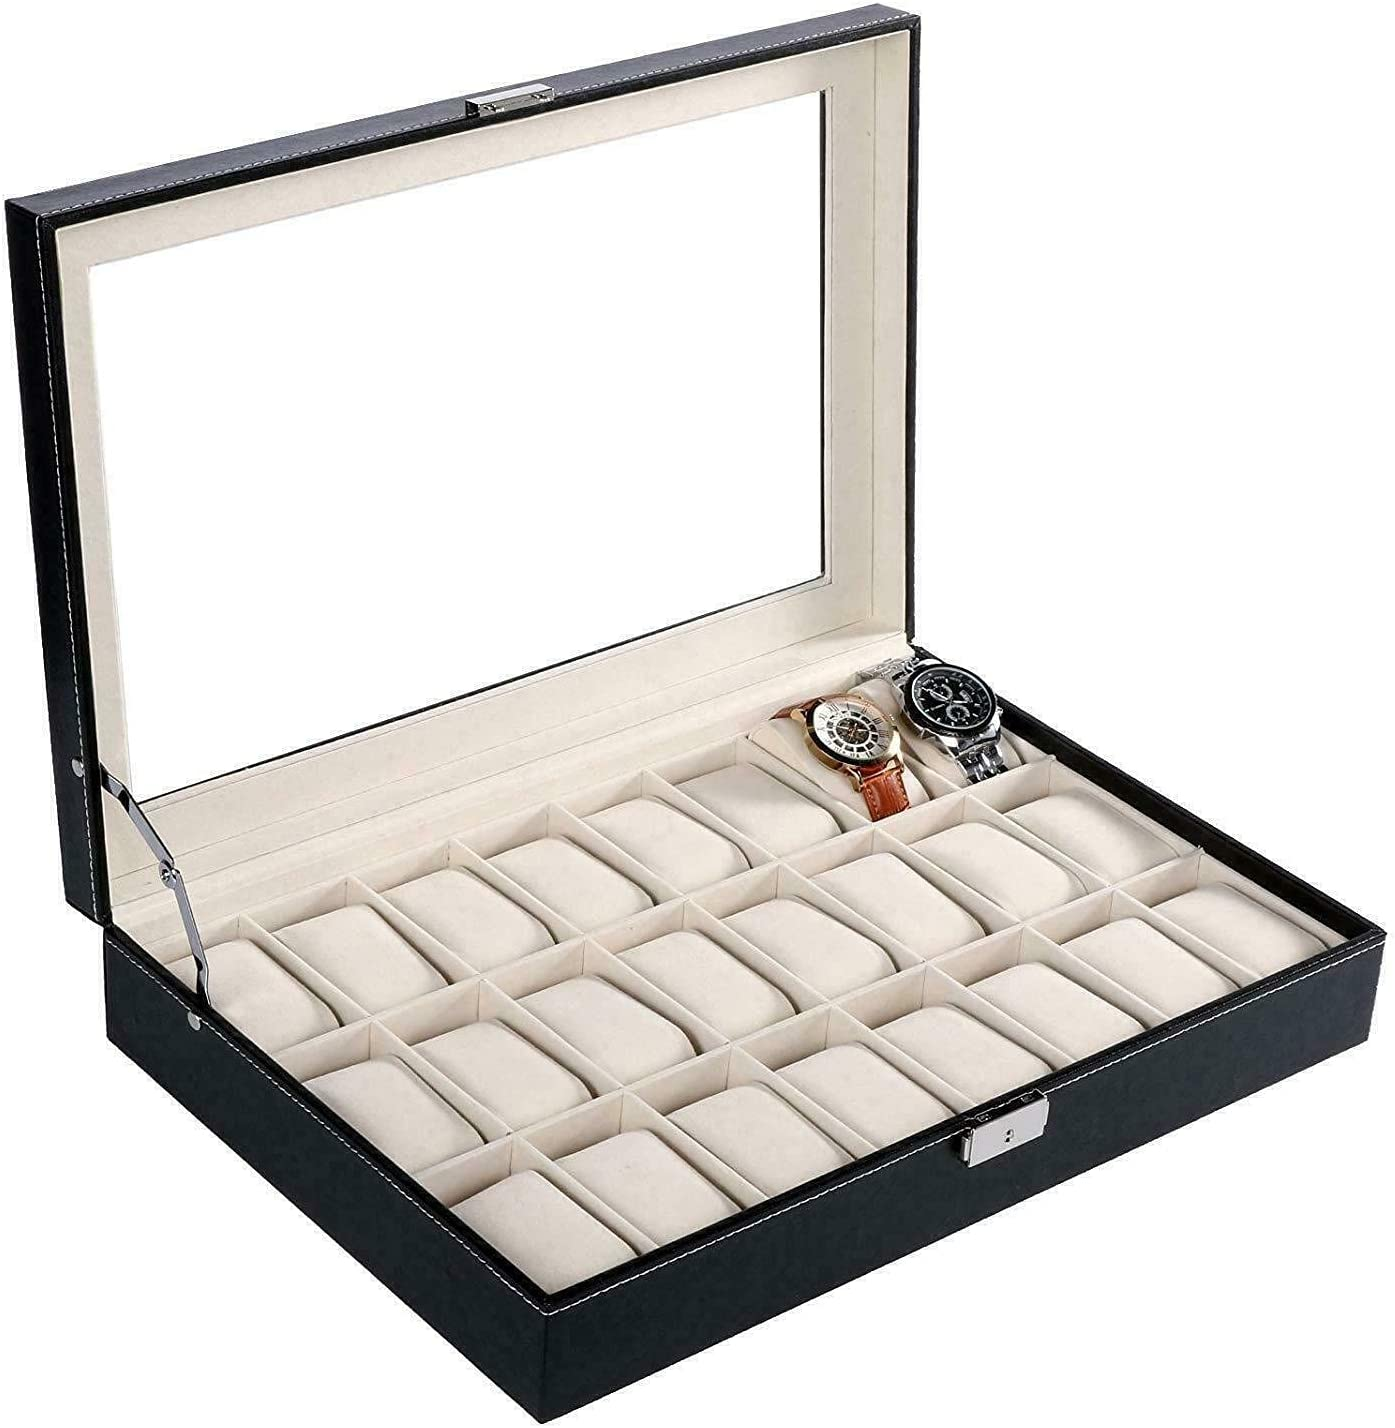 Ranking TOP8 24 Slot Leather Max 72% OFF Watch Box Jewelry Storage Space Large Organizer